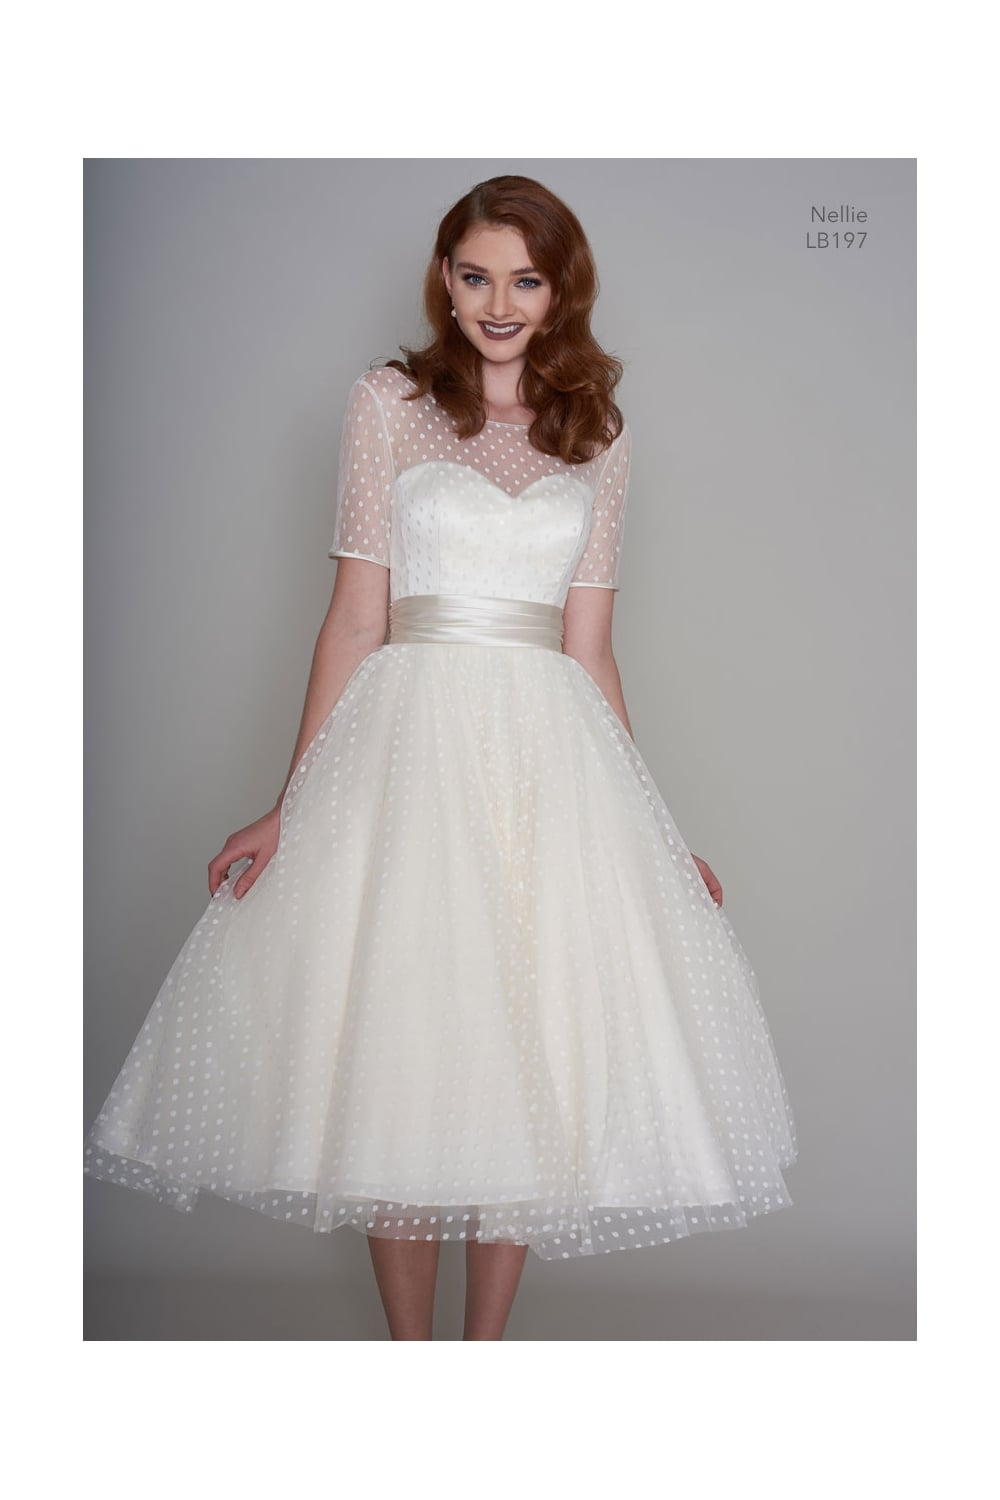 NELLIE 1950s Tea Length Polka Dot Short Vintage Wedding Dress With Sleeves